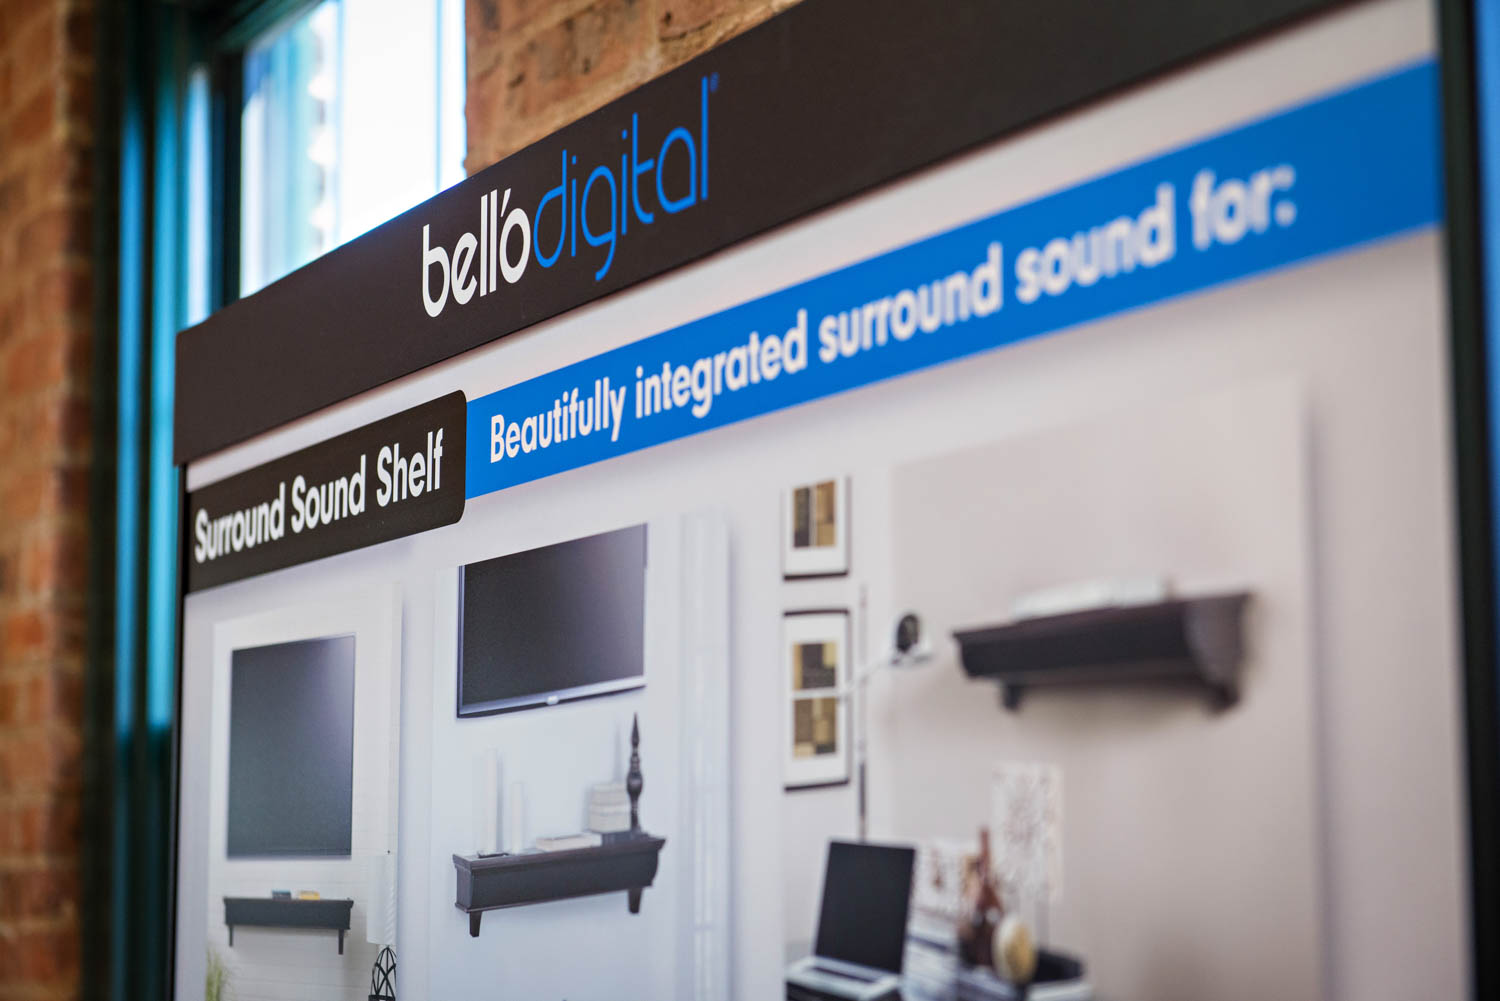 Plastic Displays for Belló Digital